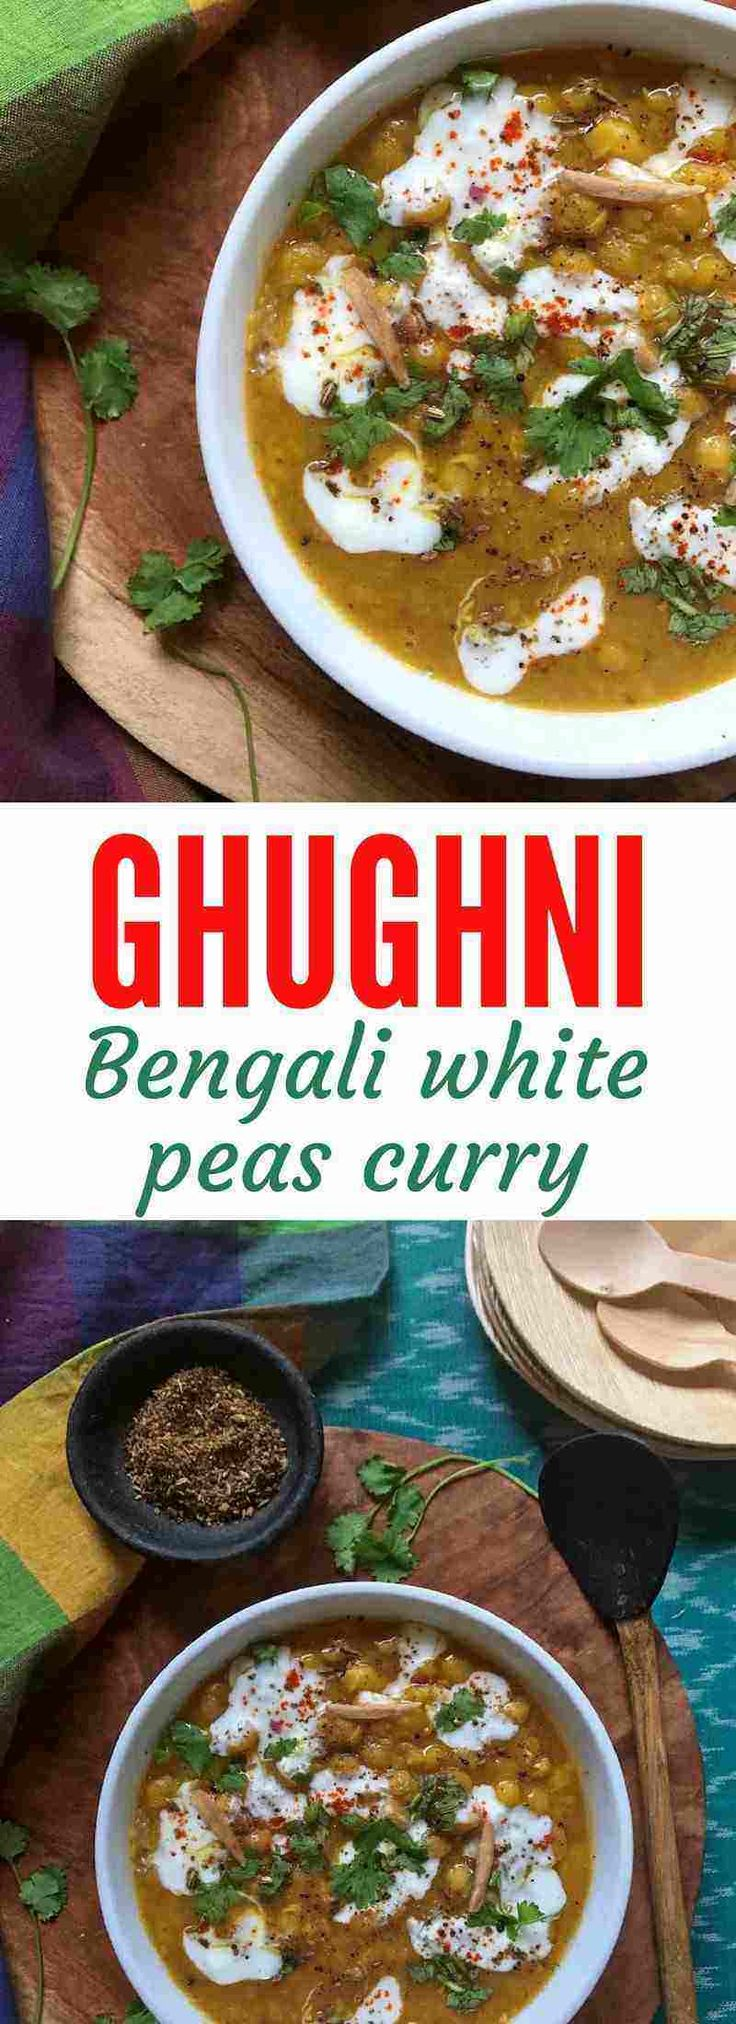 Ghughni is a simple Indian curry made using dried white peas, served by itself or as an accompaniment. It is also a popular street food in various parts of India.